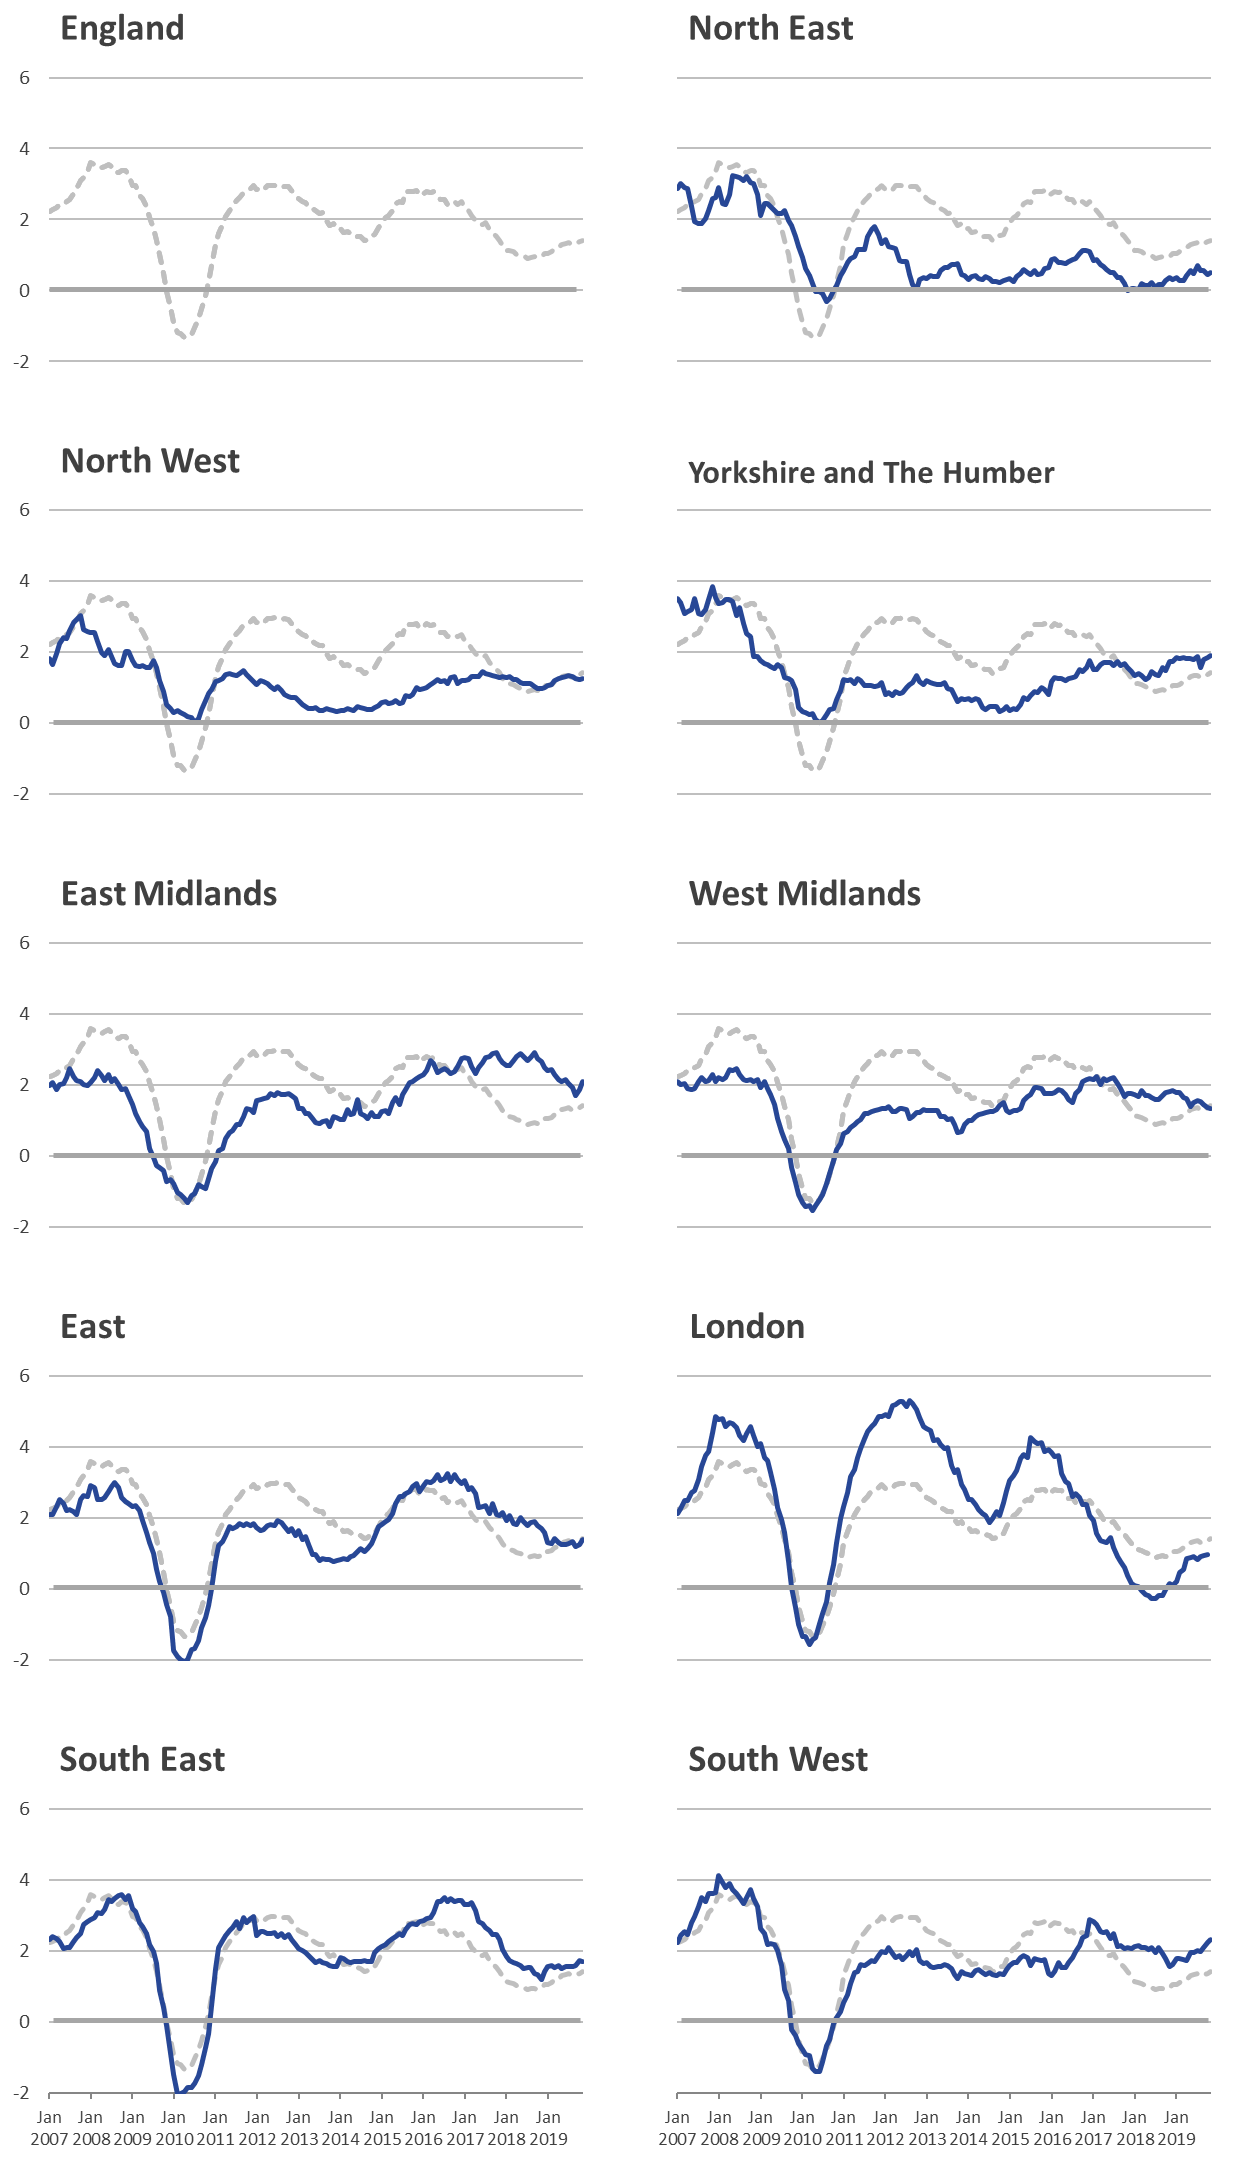 London rental prices experienced greater increases and falls than the other regions.